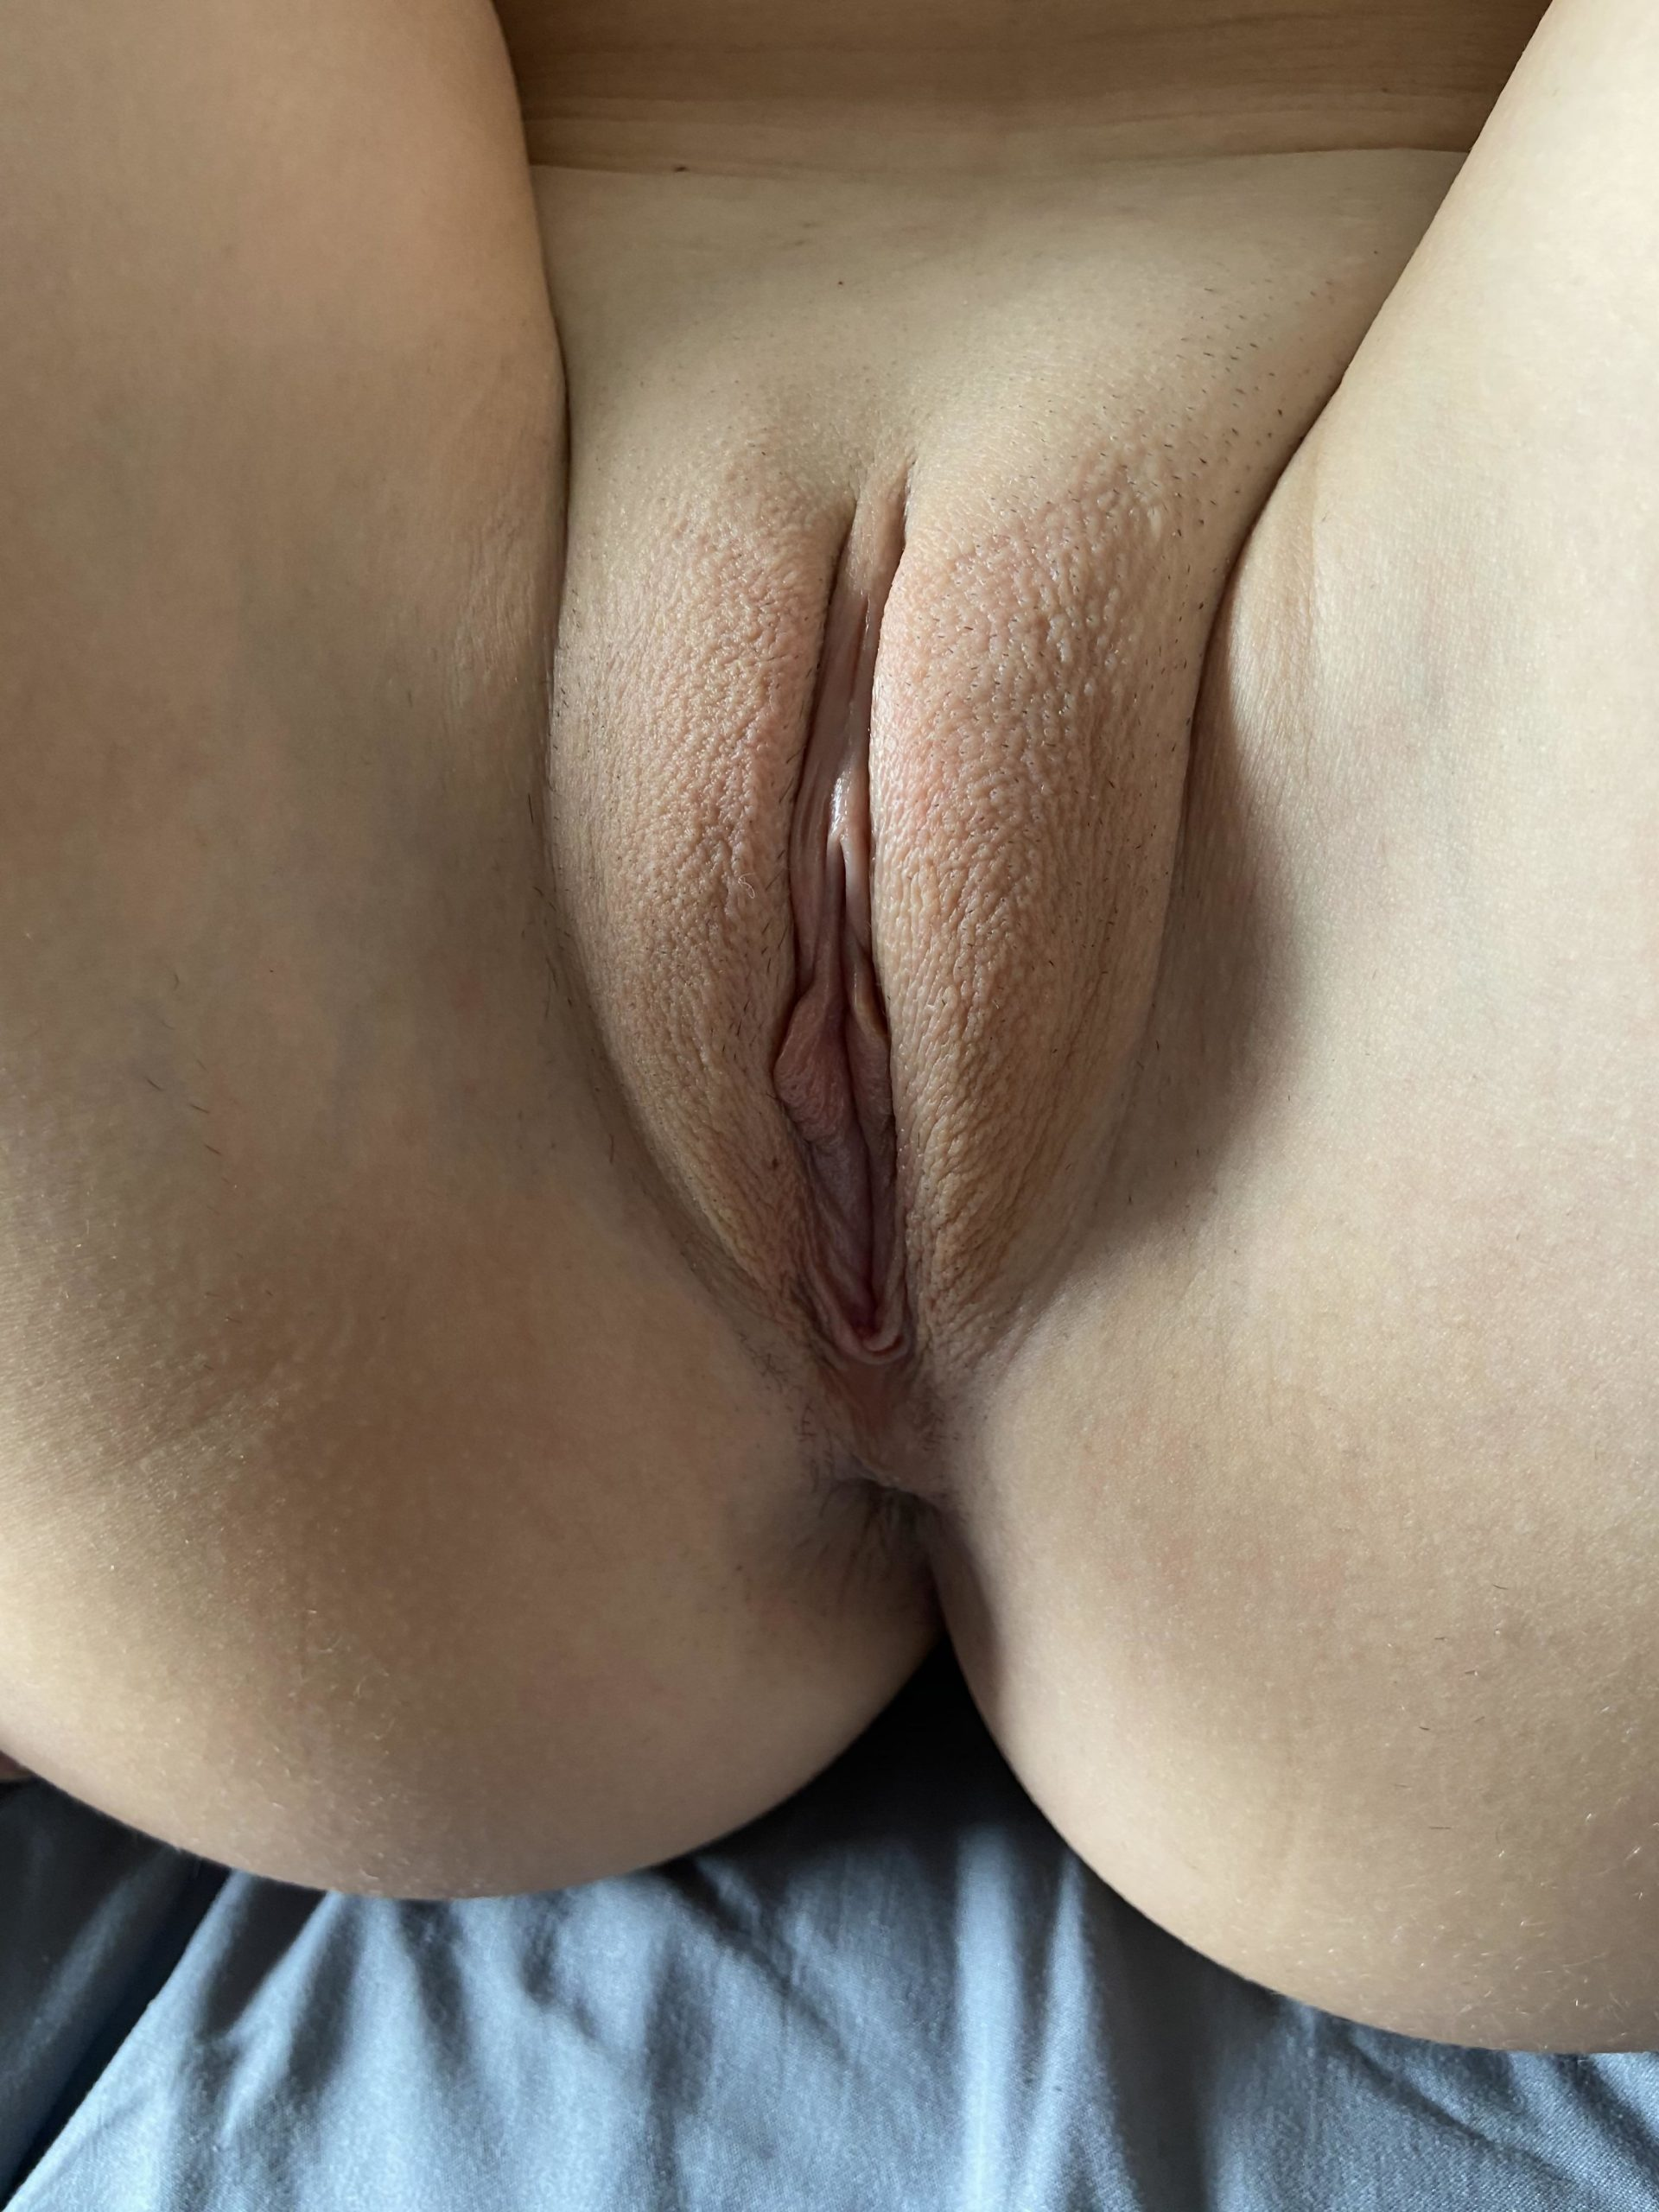 pussy first post here guys this was before i got pounded 8khGRa scaled